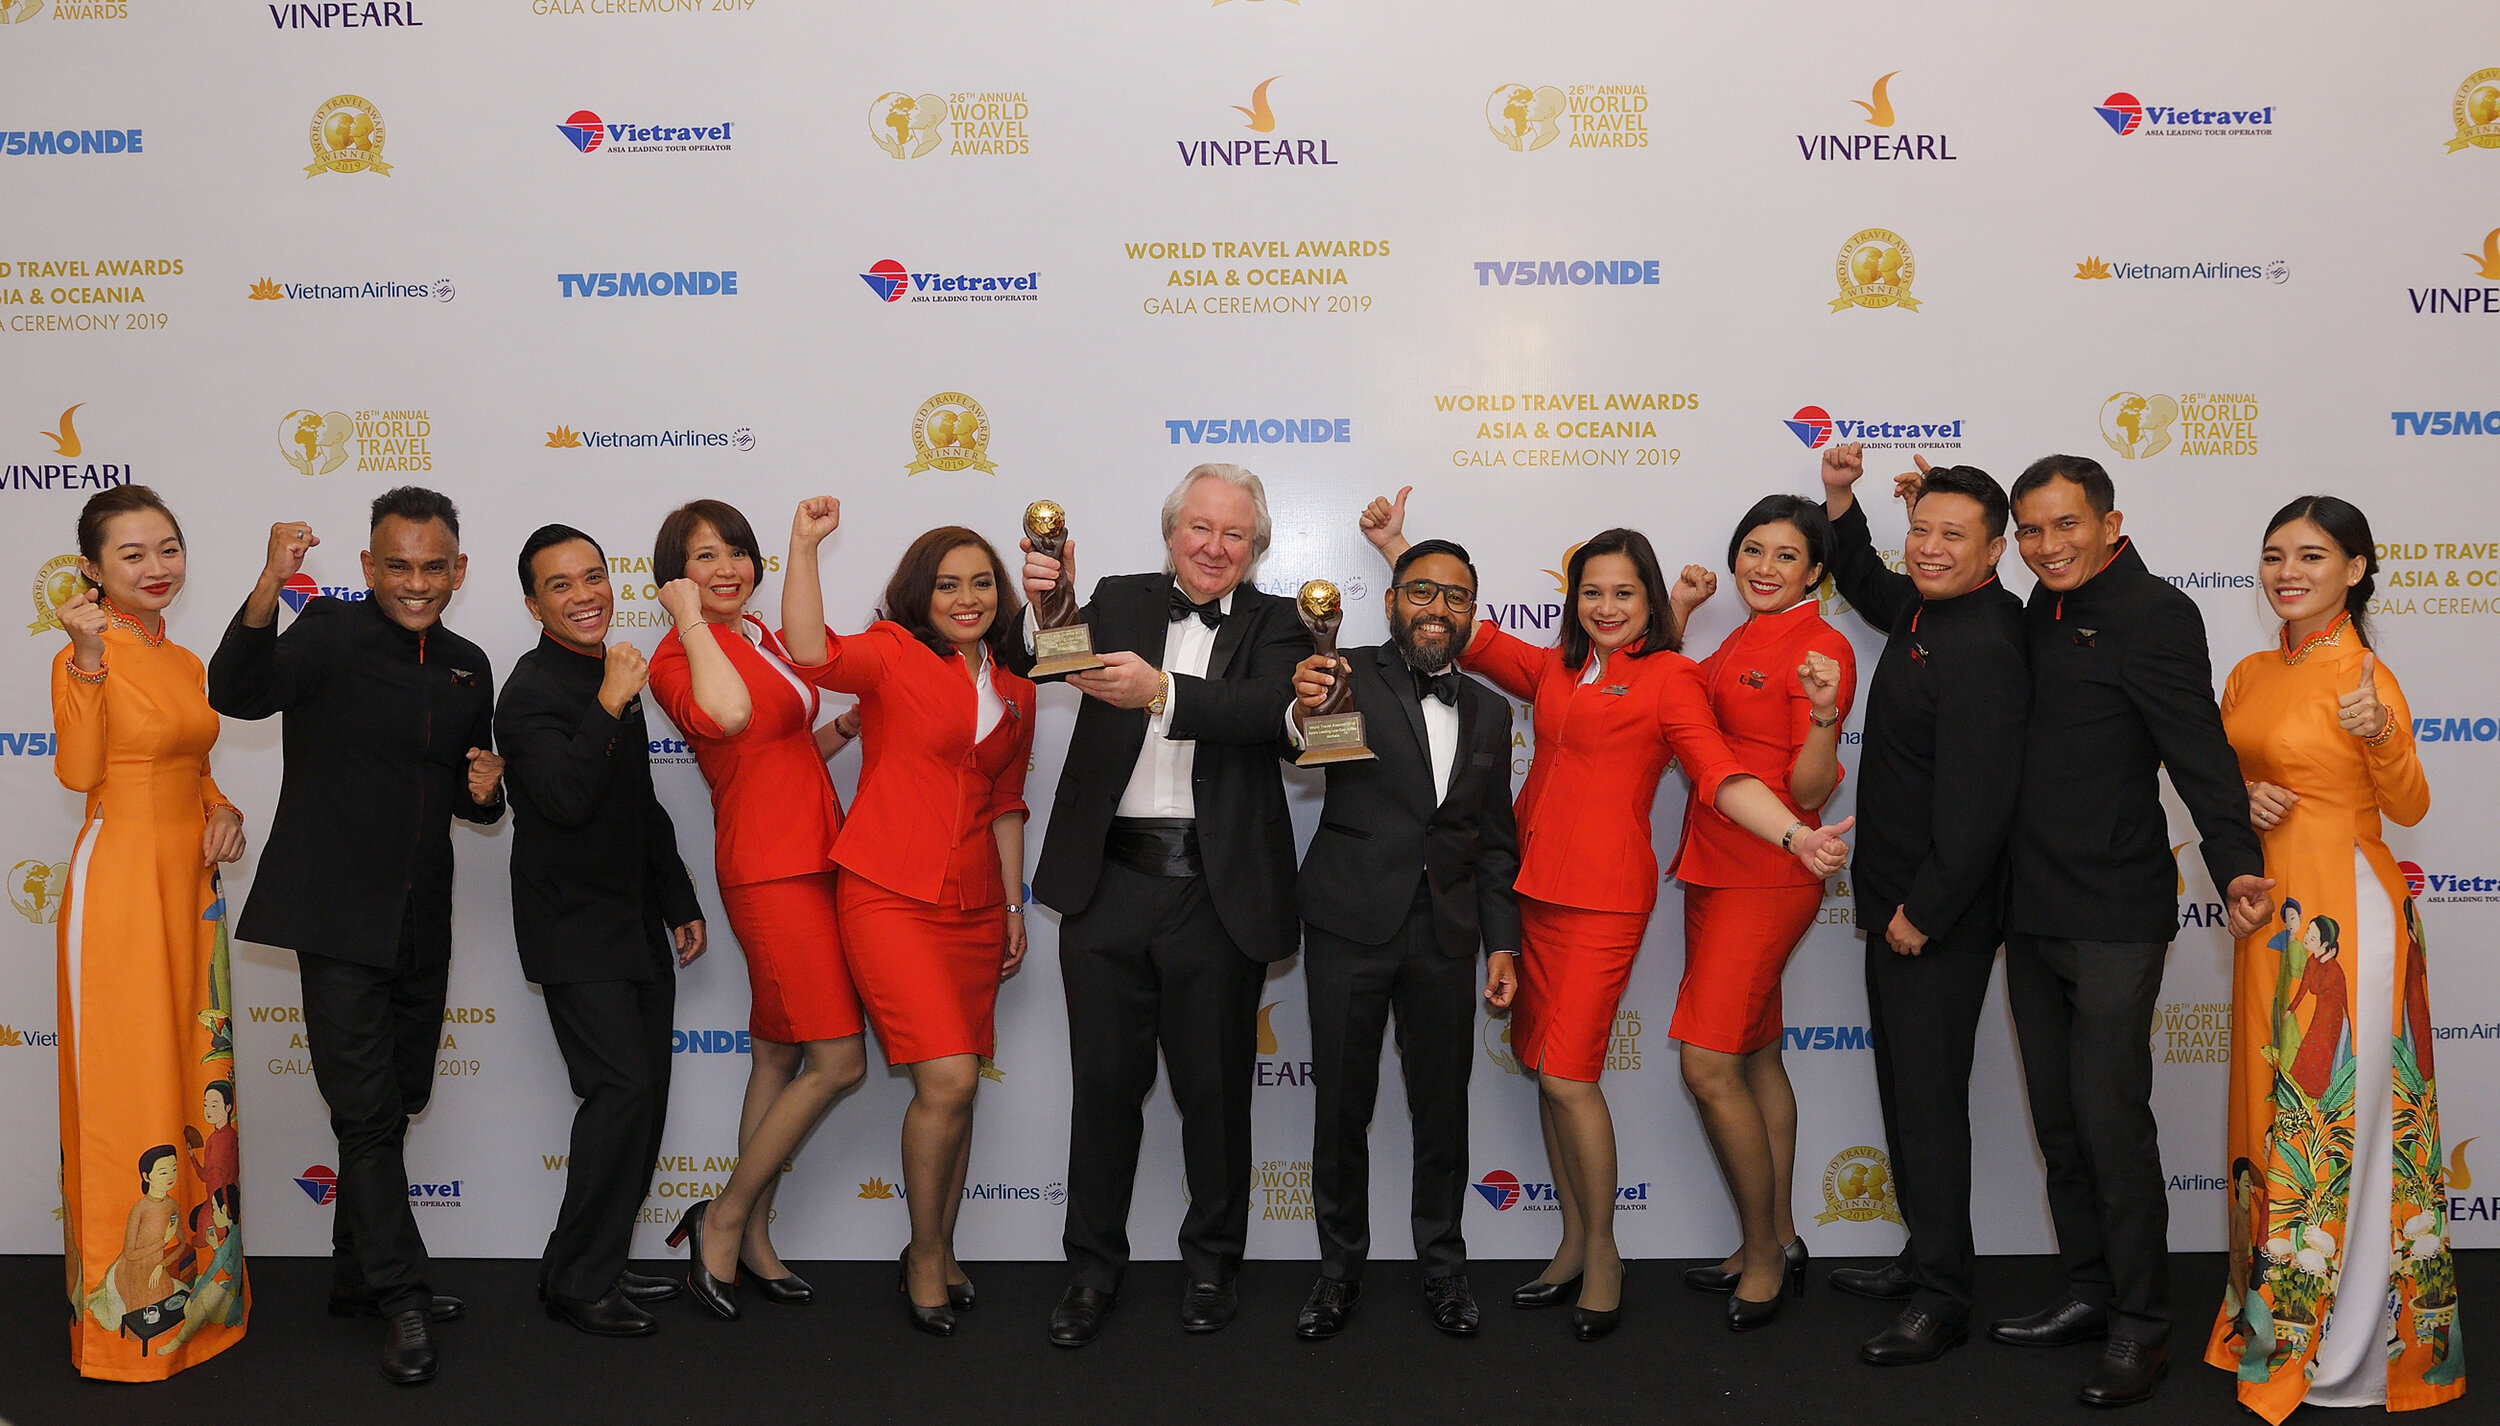 Photo Caption: AirAsia Malaysia CEO Riad Asmat and a group of AirAsia's pioneer cabin crew accepted the Asia's Leading Low-Cost Airline and Asia's Leading Low-Cost Airline Cabin Crew awards from President and Founder of World Travel Awards Graham Cooke (centre right).